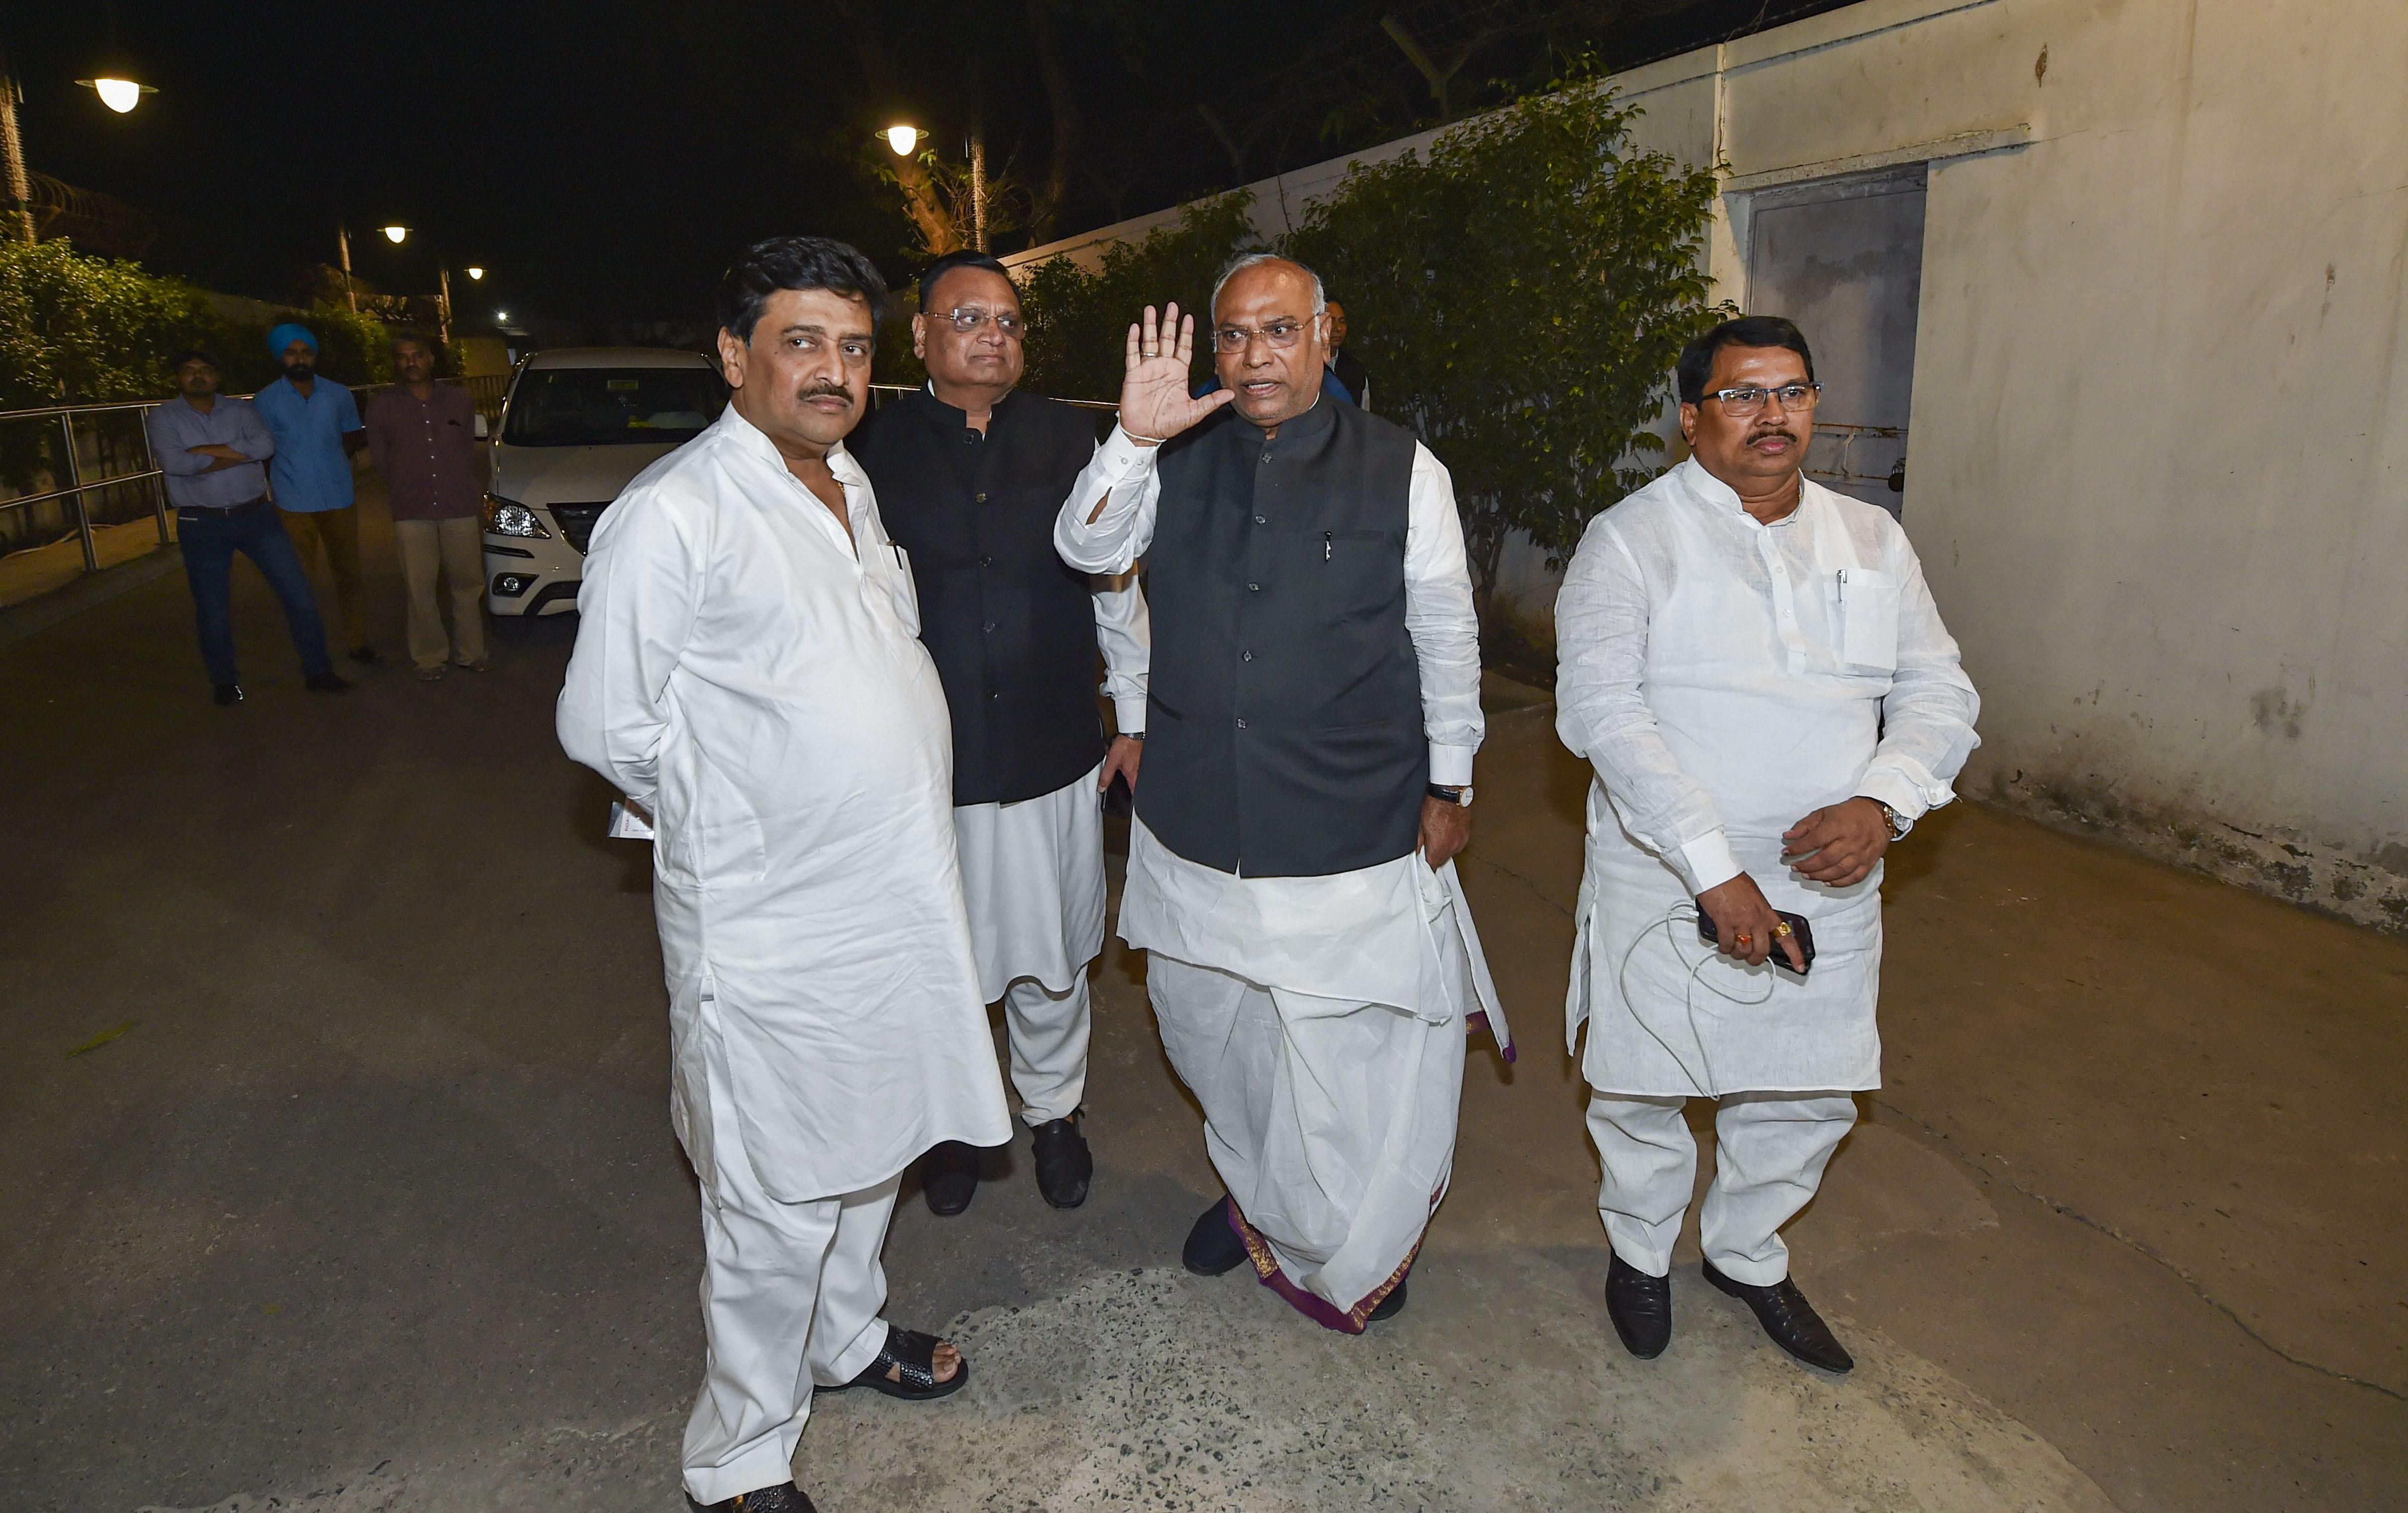 Senior Congress leader Mallikarjun Kharge with party leaders Ashok Chavan and Vijay Wadettiwar after a meeting with the party president Sonia Gandhi at 10 Janpath, in New Delhi, Monday, November 11, 2019.